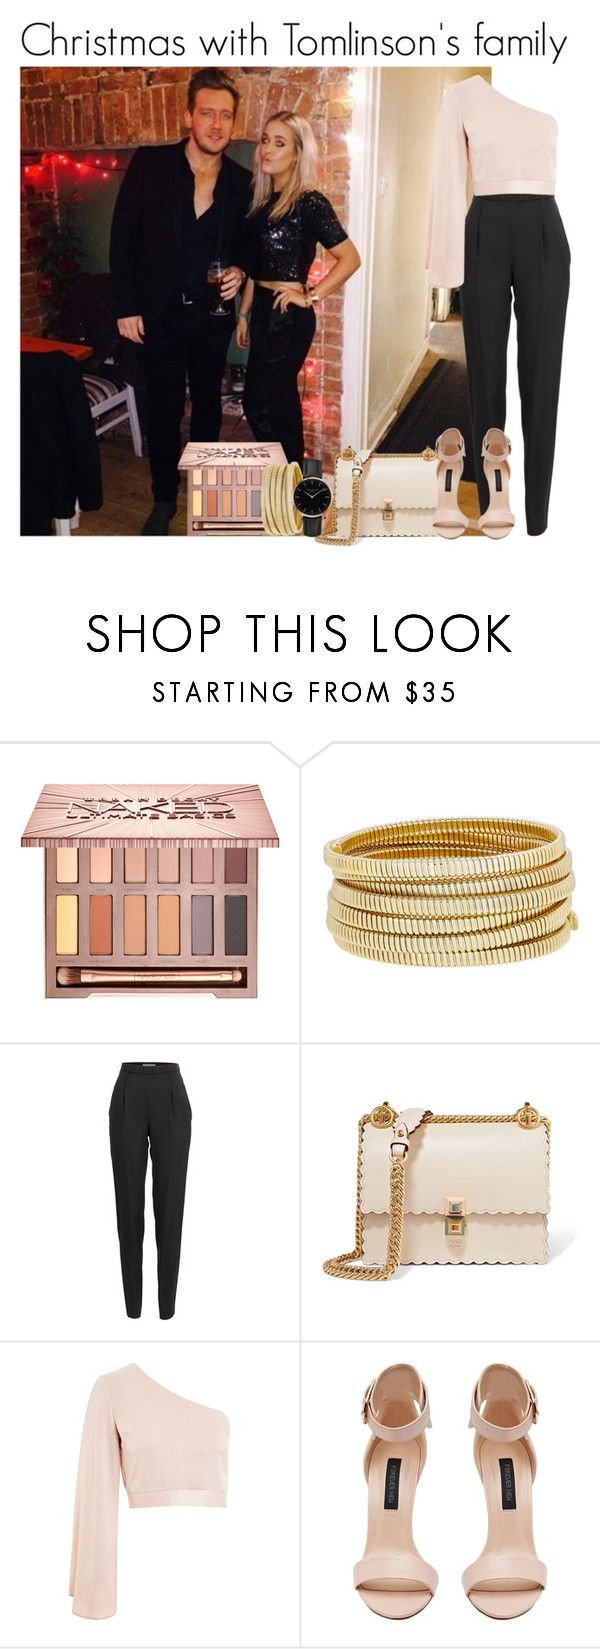 """""""Christmas with Tomlinson's family"""" by mllestylesusa ❤ liked on Polyvore featuring Urban Decay, Bagutta, Vionnet, Fendi, Topshop and Forever New"""